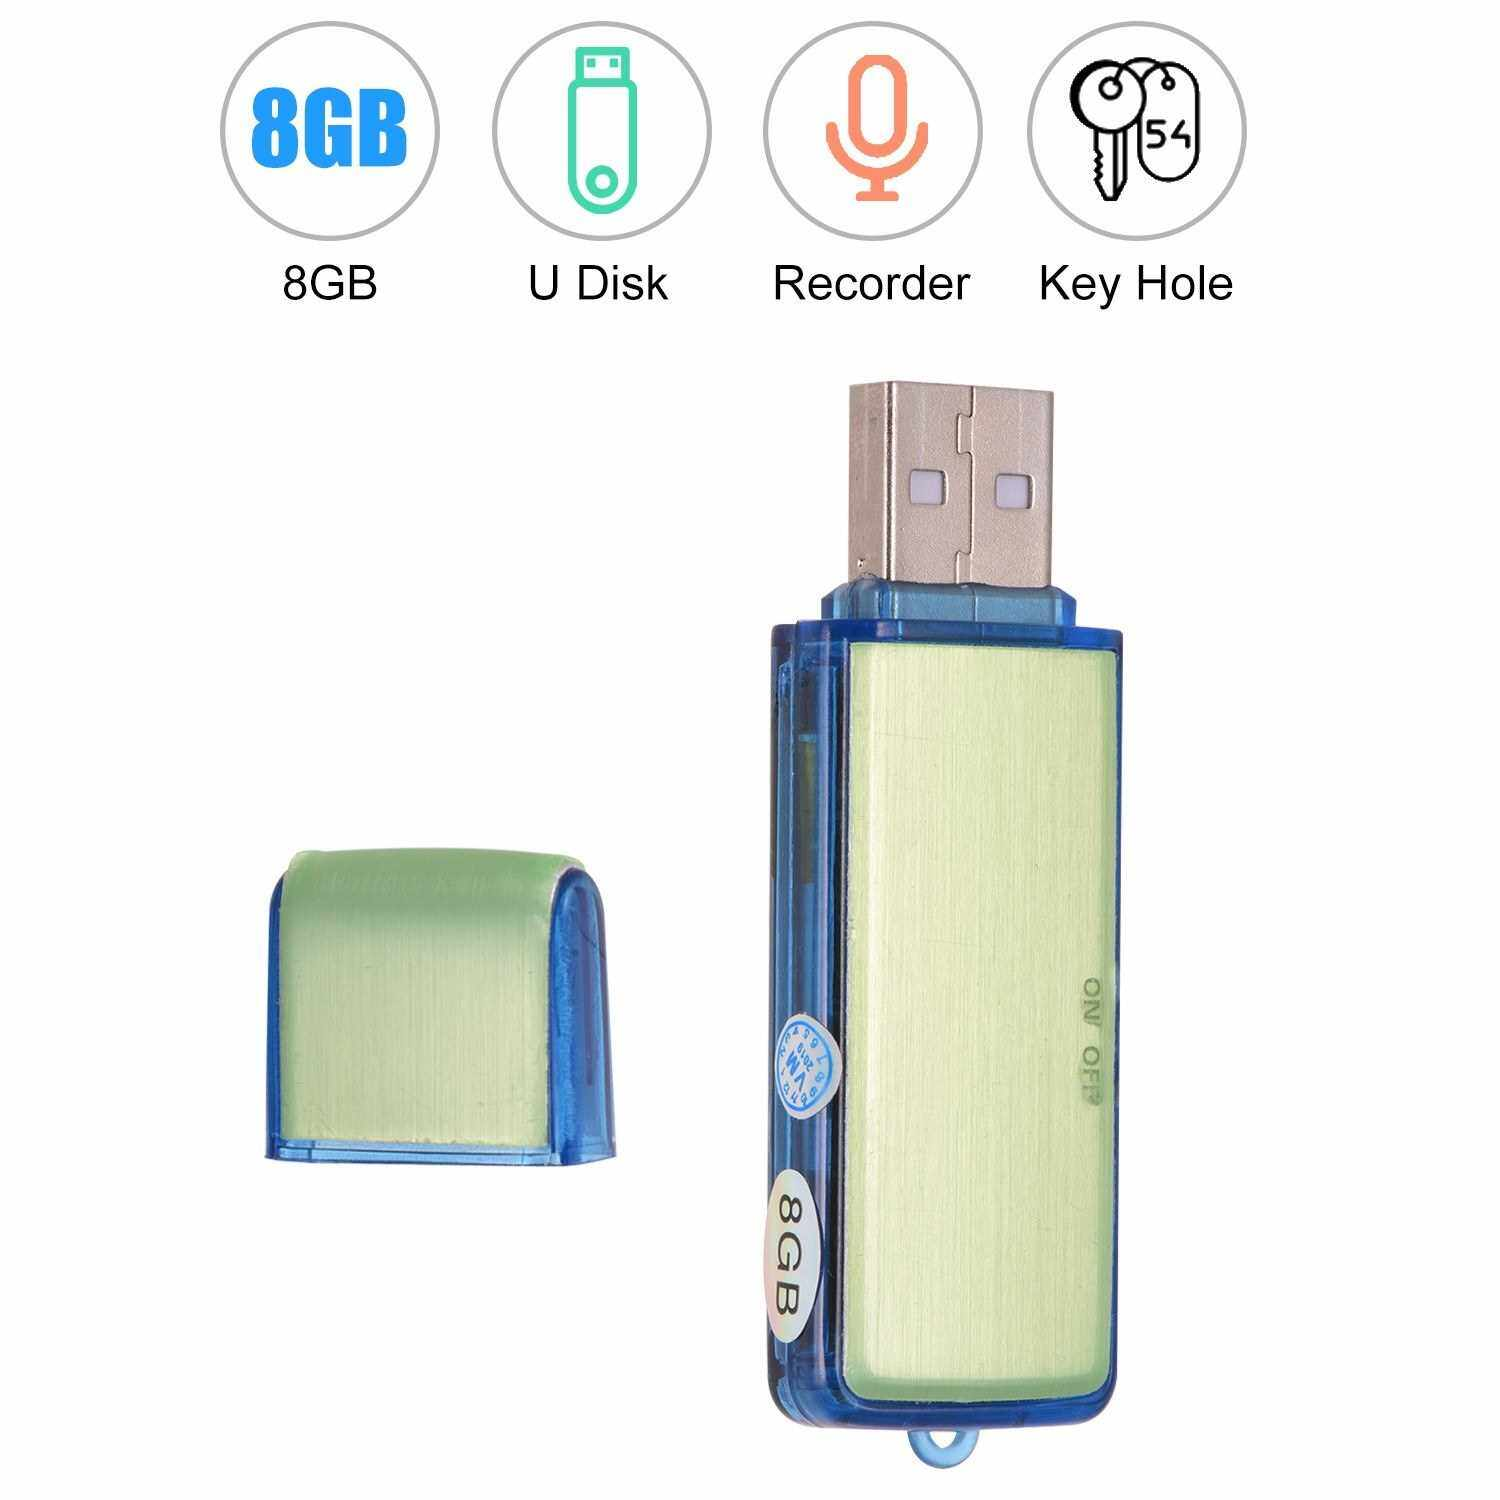 Mini USB Digital Voice Sound Recorder U-Disk Recorder One-Button Recording Rechargeable 8GB Capacity for Meeting Lecture Interview (Standard)